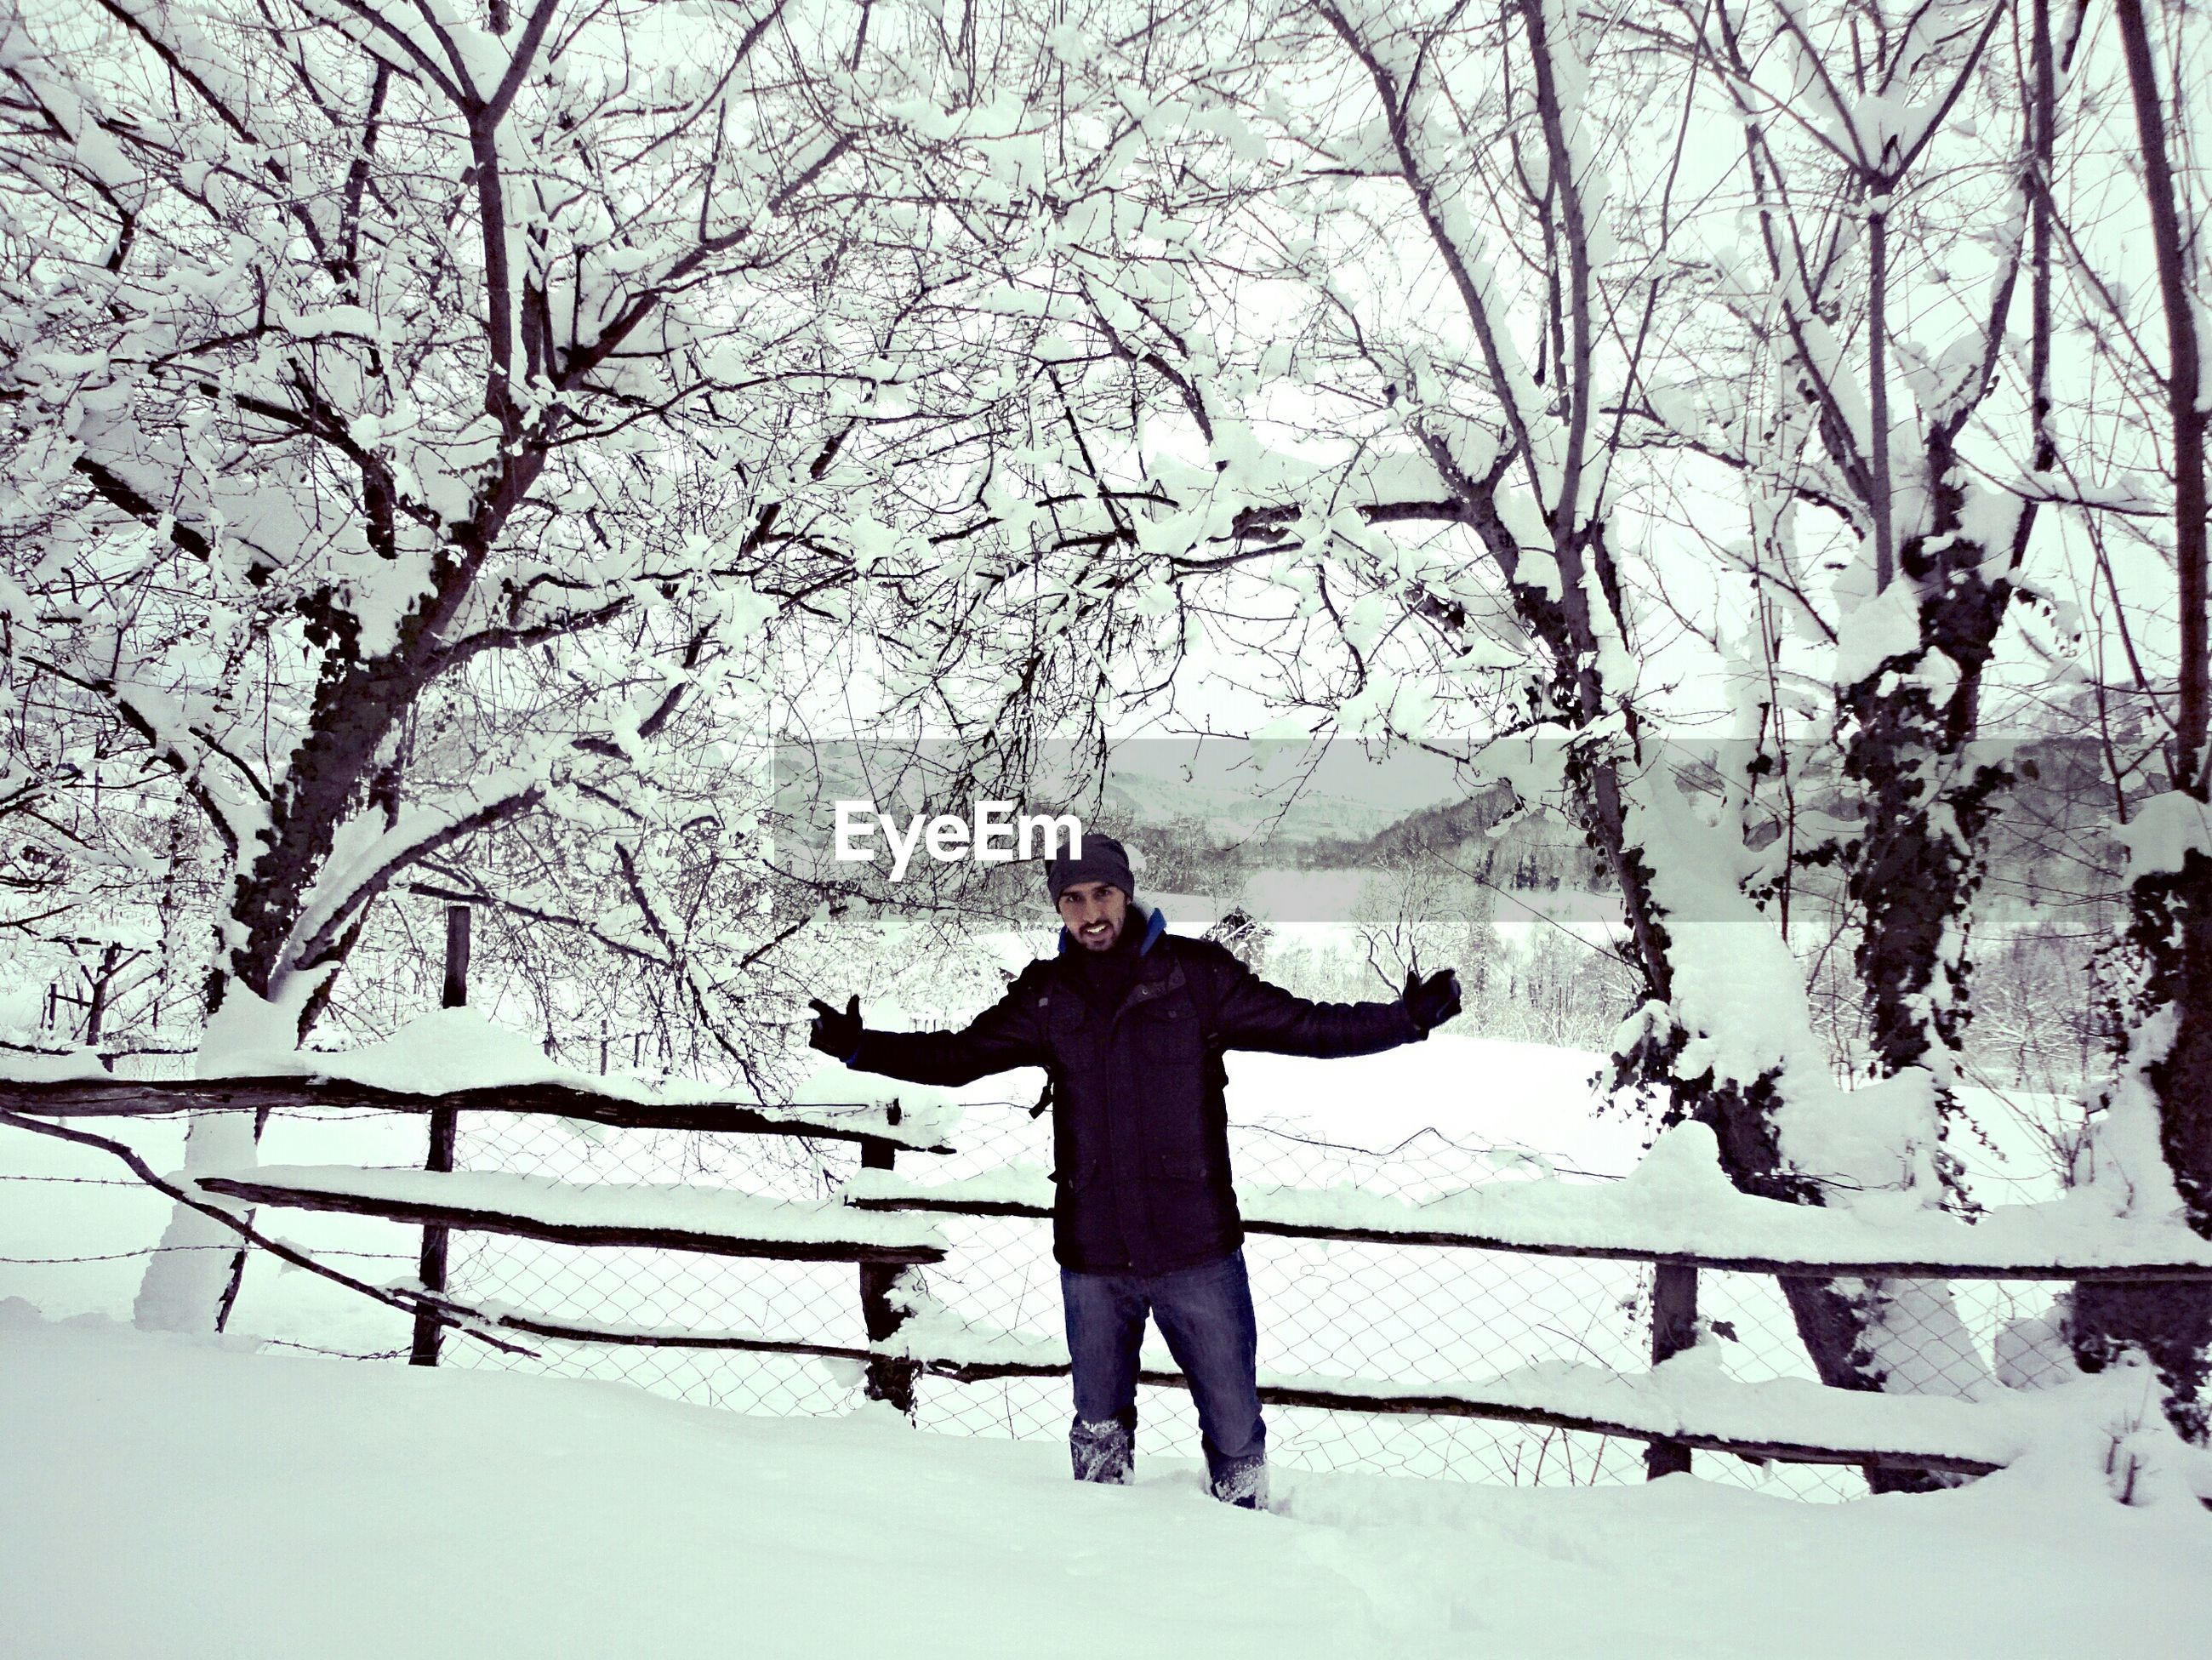 winter, snow, lifestyles, cold temperature, bare tree, season, full length, leisure activity, tree, standing, weather, warm clothing, branch, young women, young adult, casual clothing, day, front view